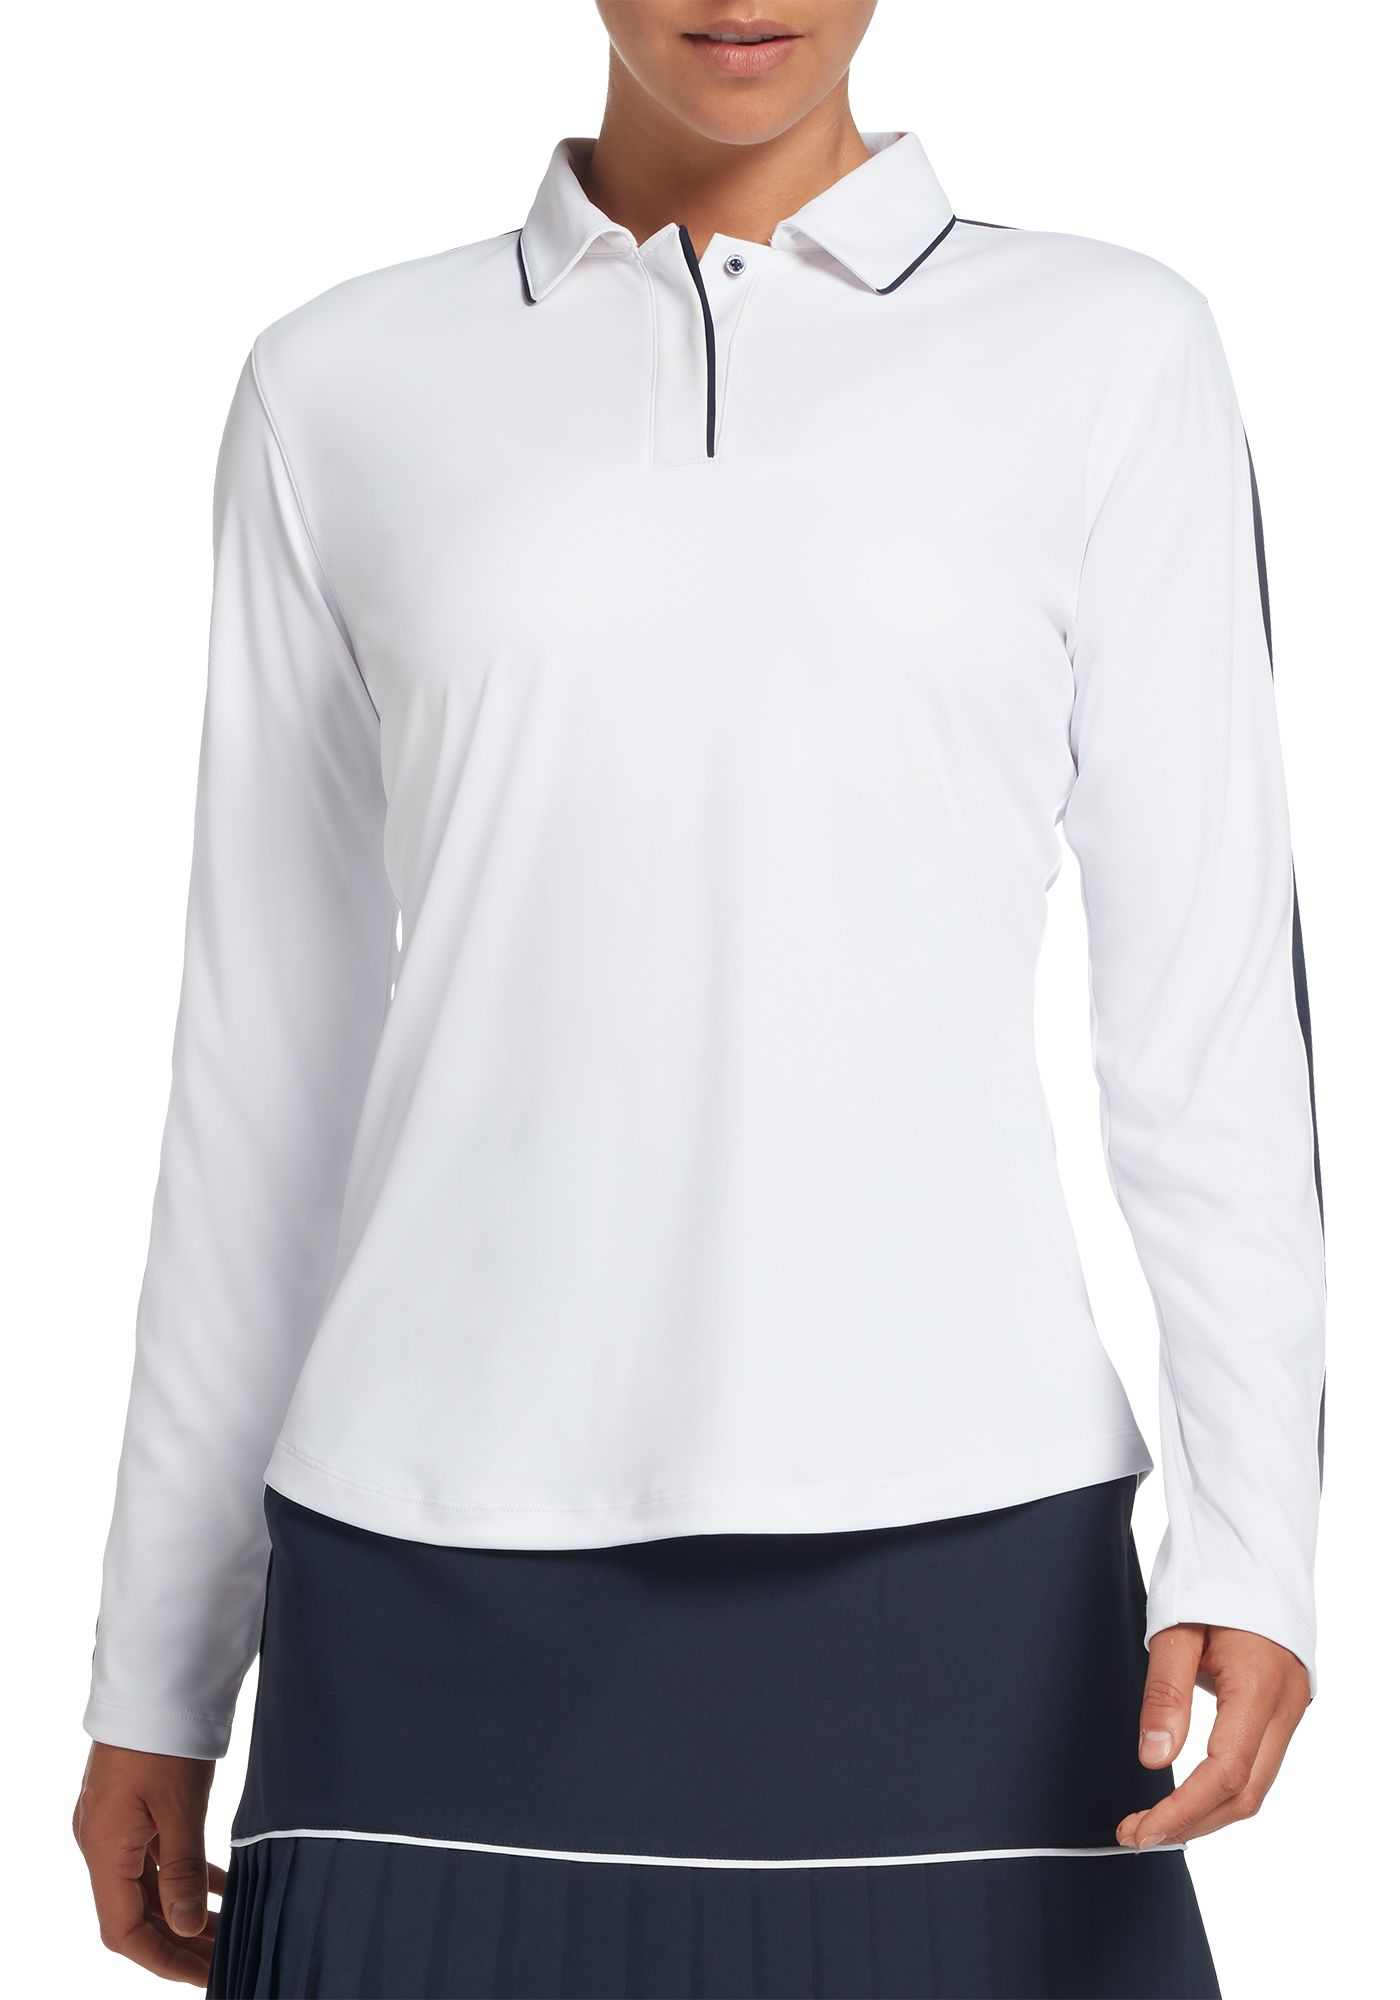 Lady Hagen Women's Tranquil Collection Long Sleeve Golf Polo